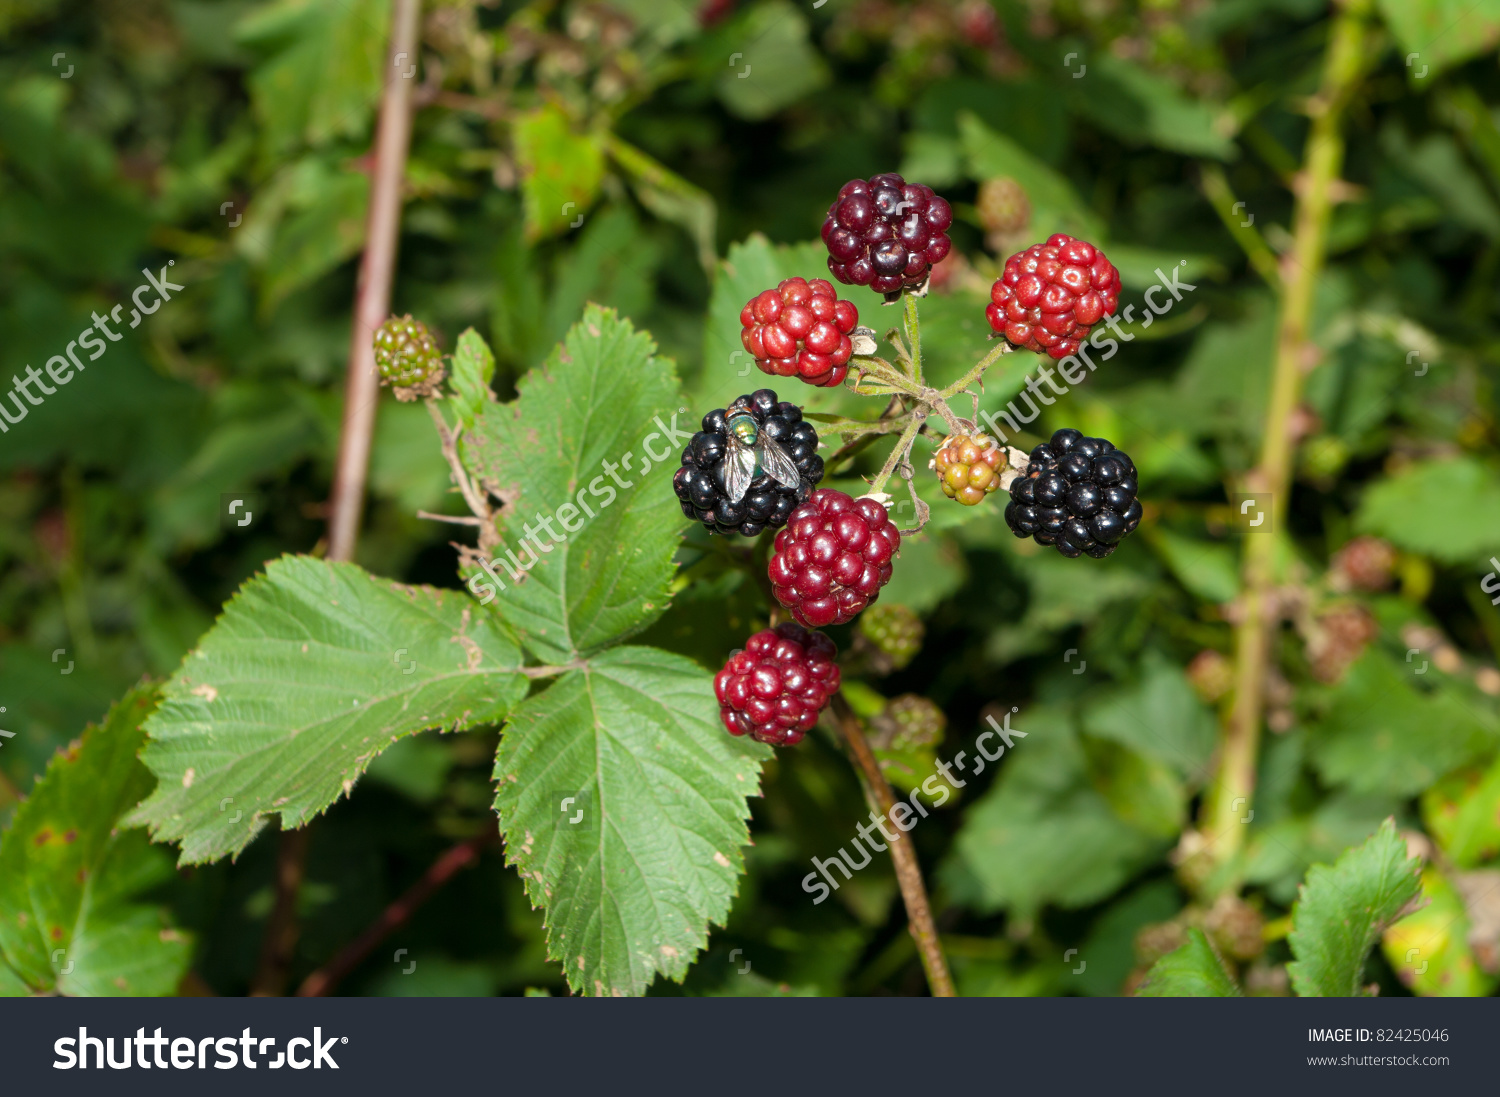 Blackberry Bush Ripe Unripe Berries Fly Stock Photo 82425046.